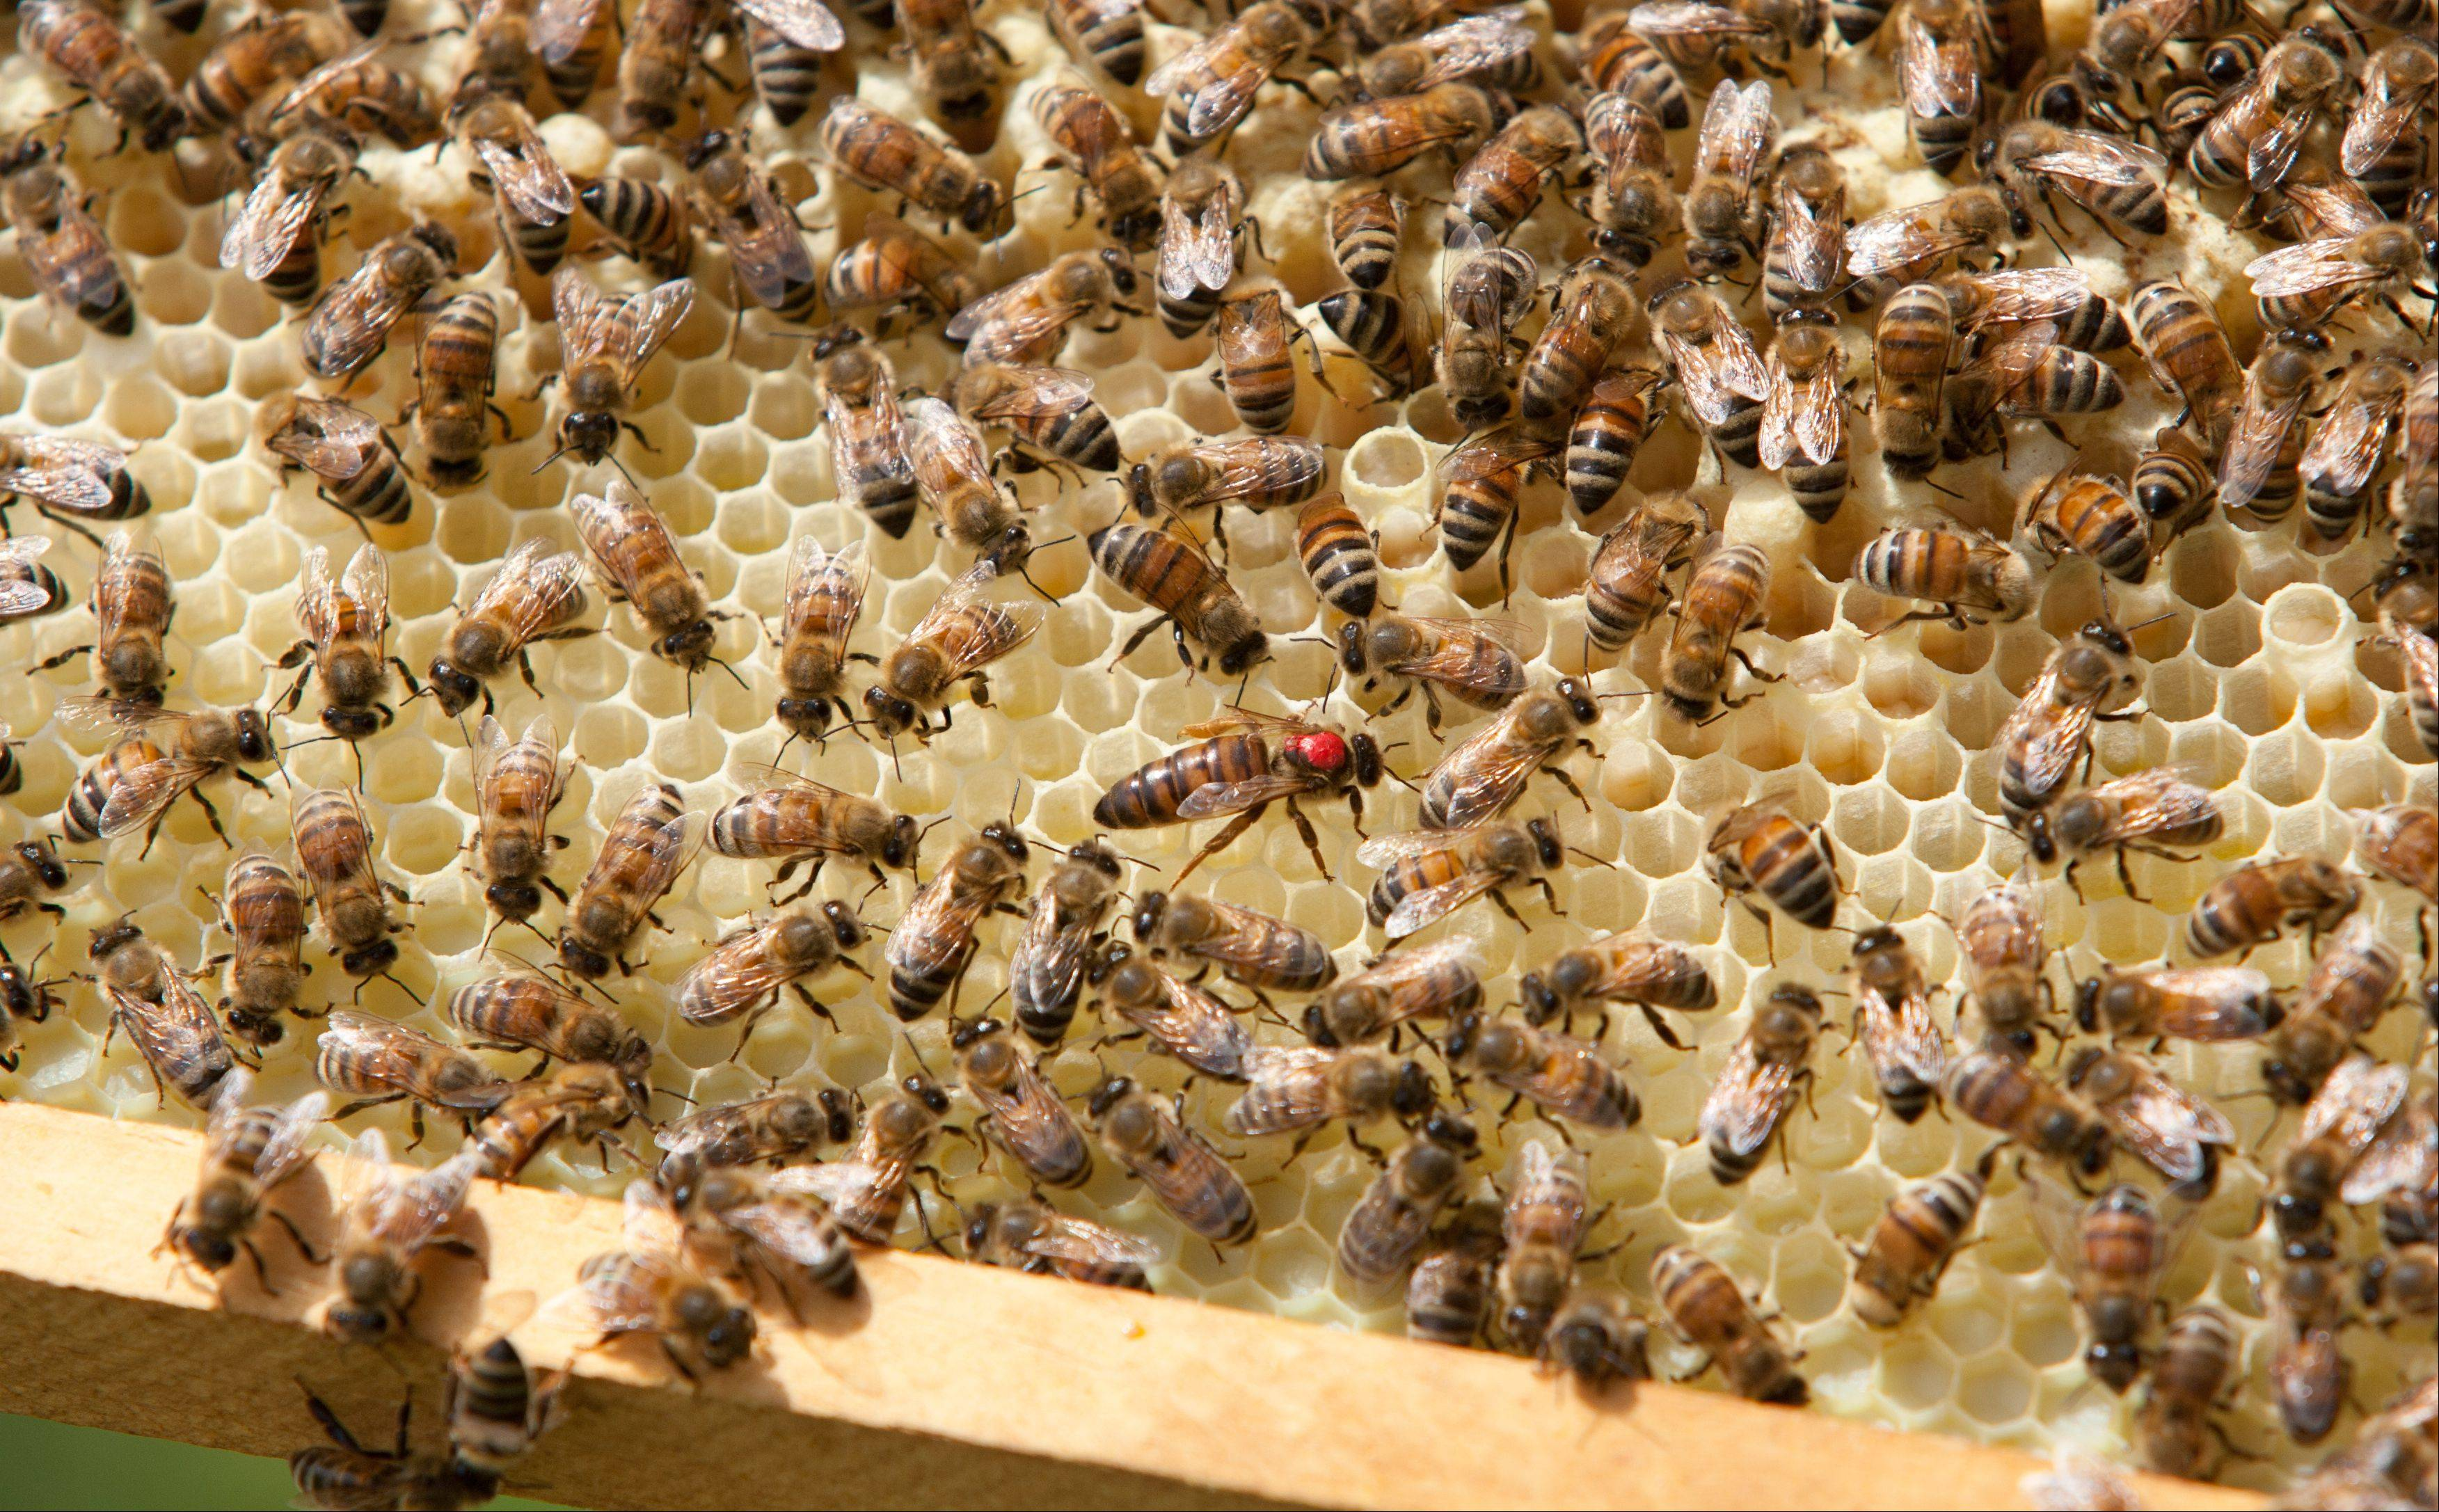 The queen bee, center, navigates part of the hive looking for a place to lay eggs.